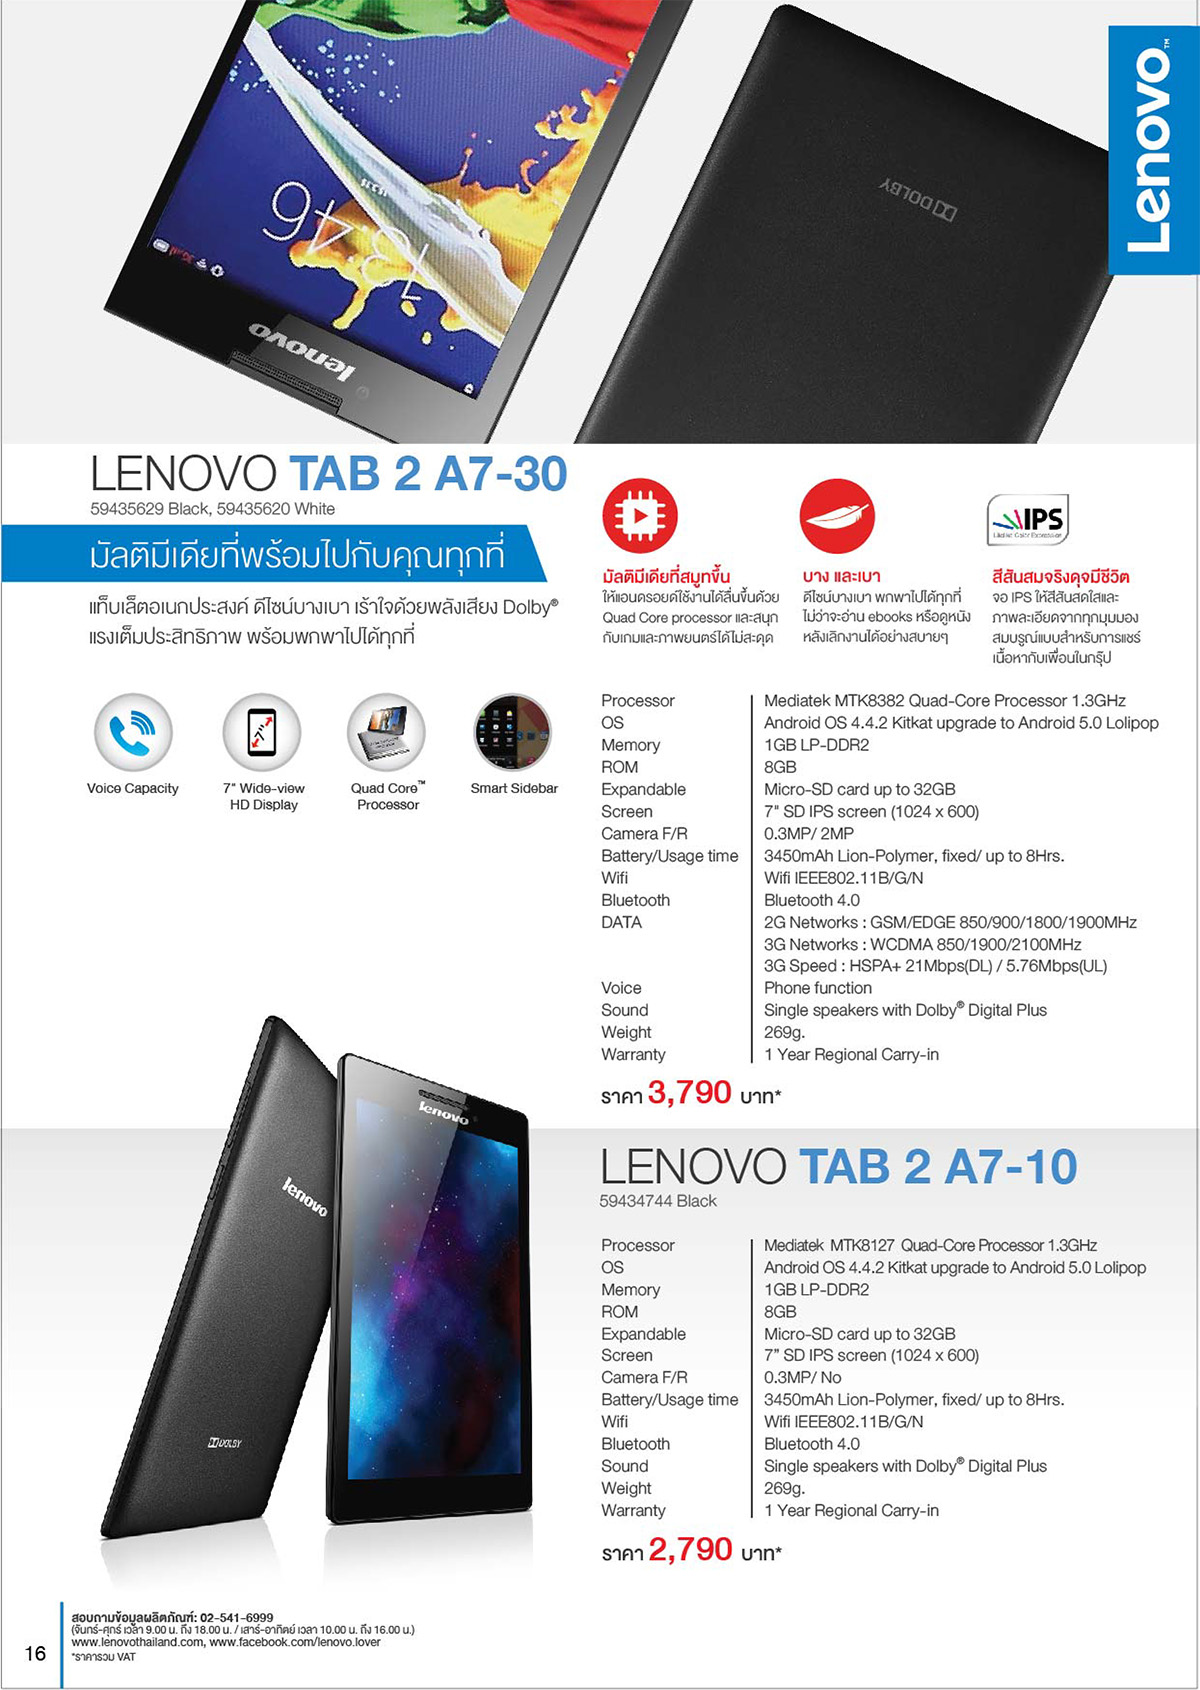 Lenovo Consumer Product Catalog Q2FY15_Final AW-16